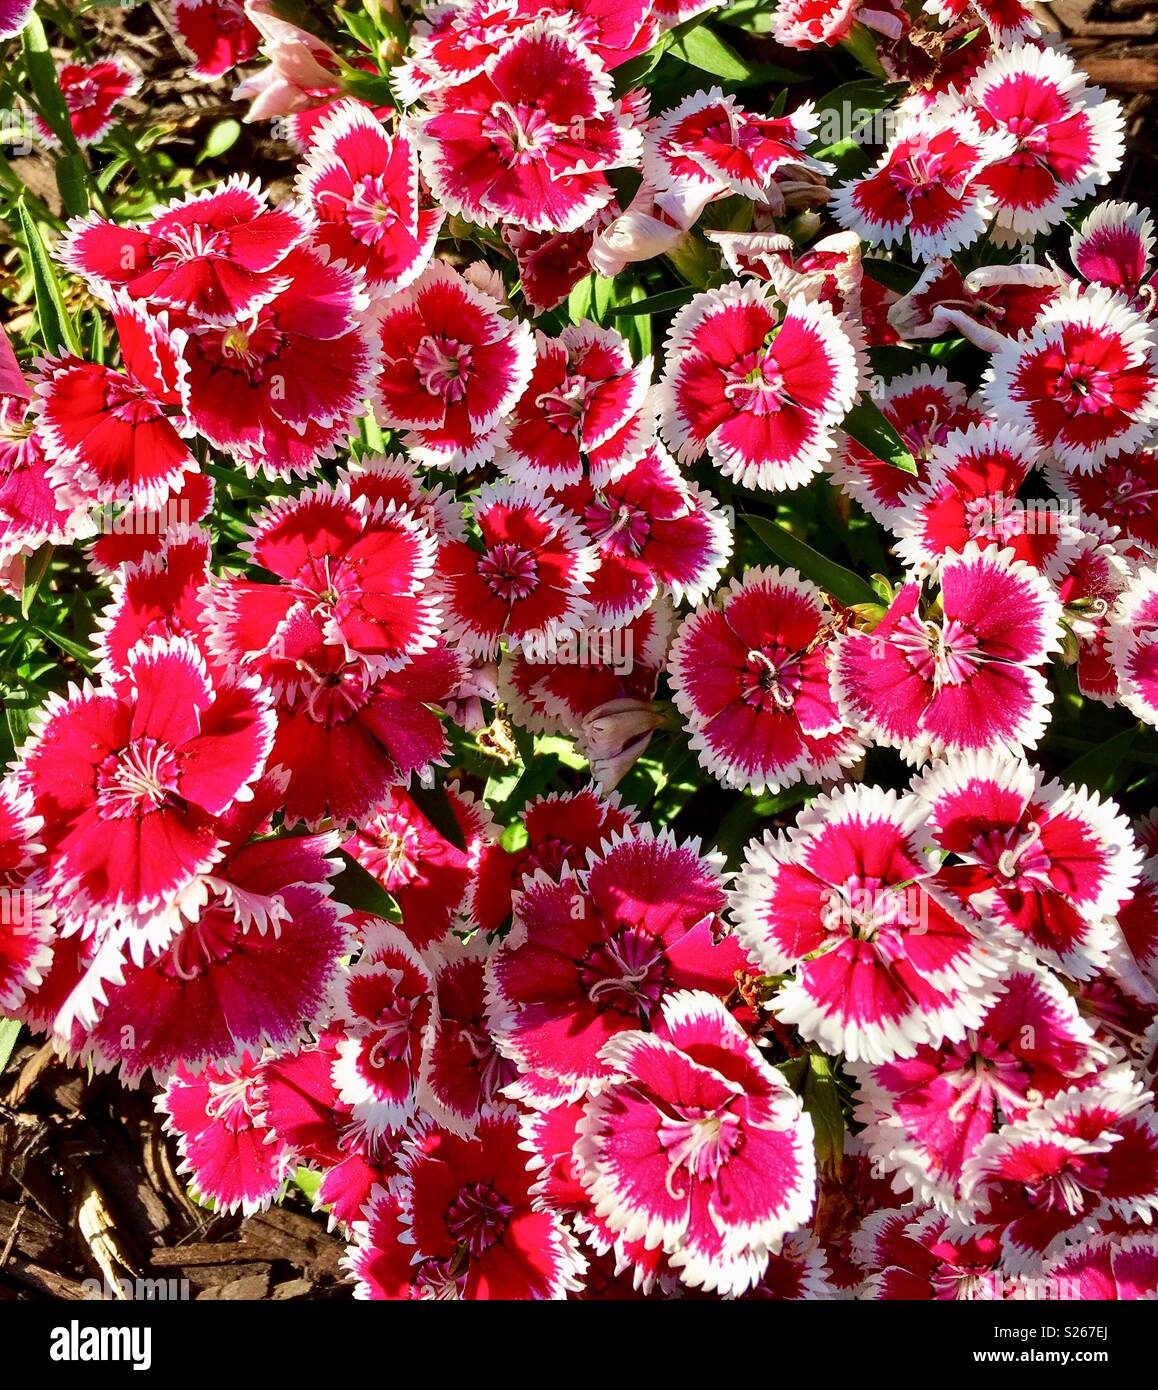 Dianthus Pinks Flowers Stock Photo 311153546 Alamy